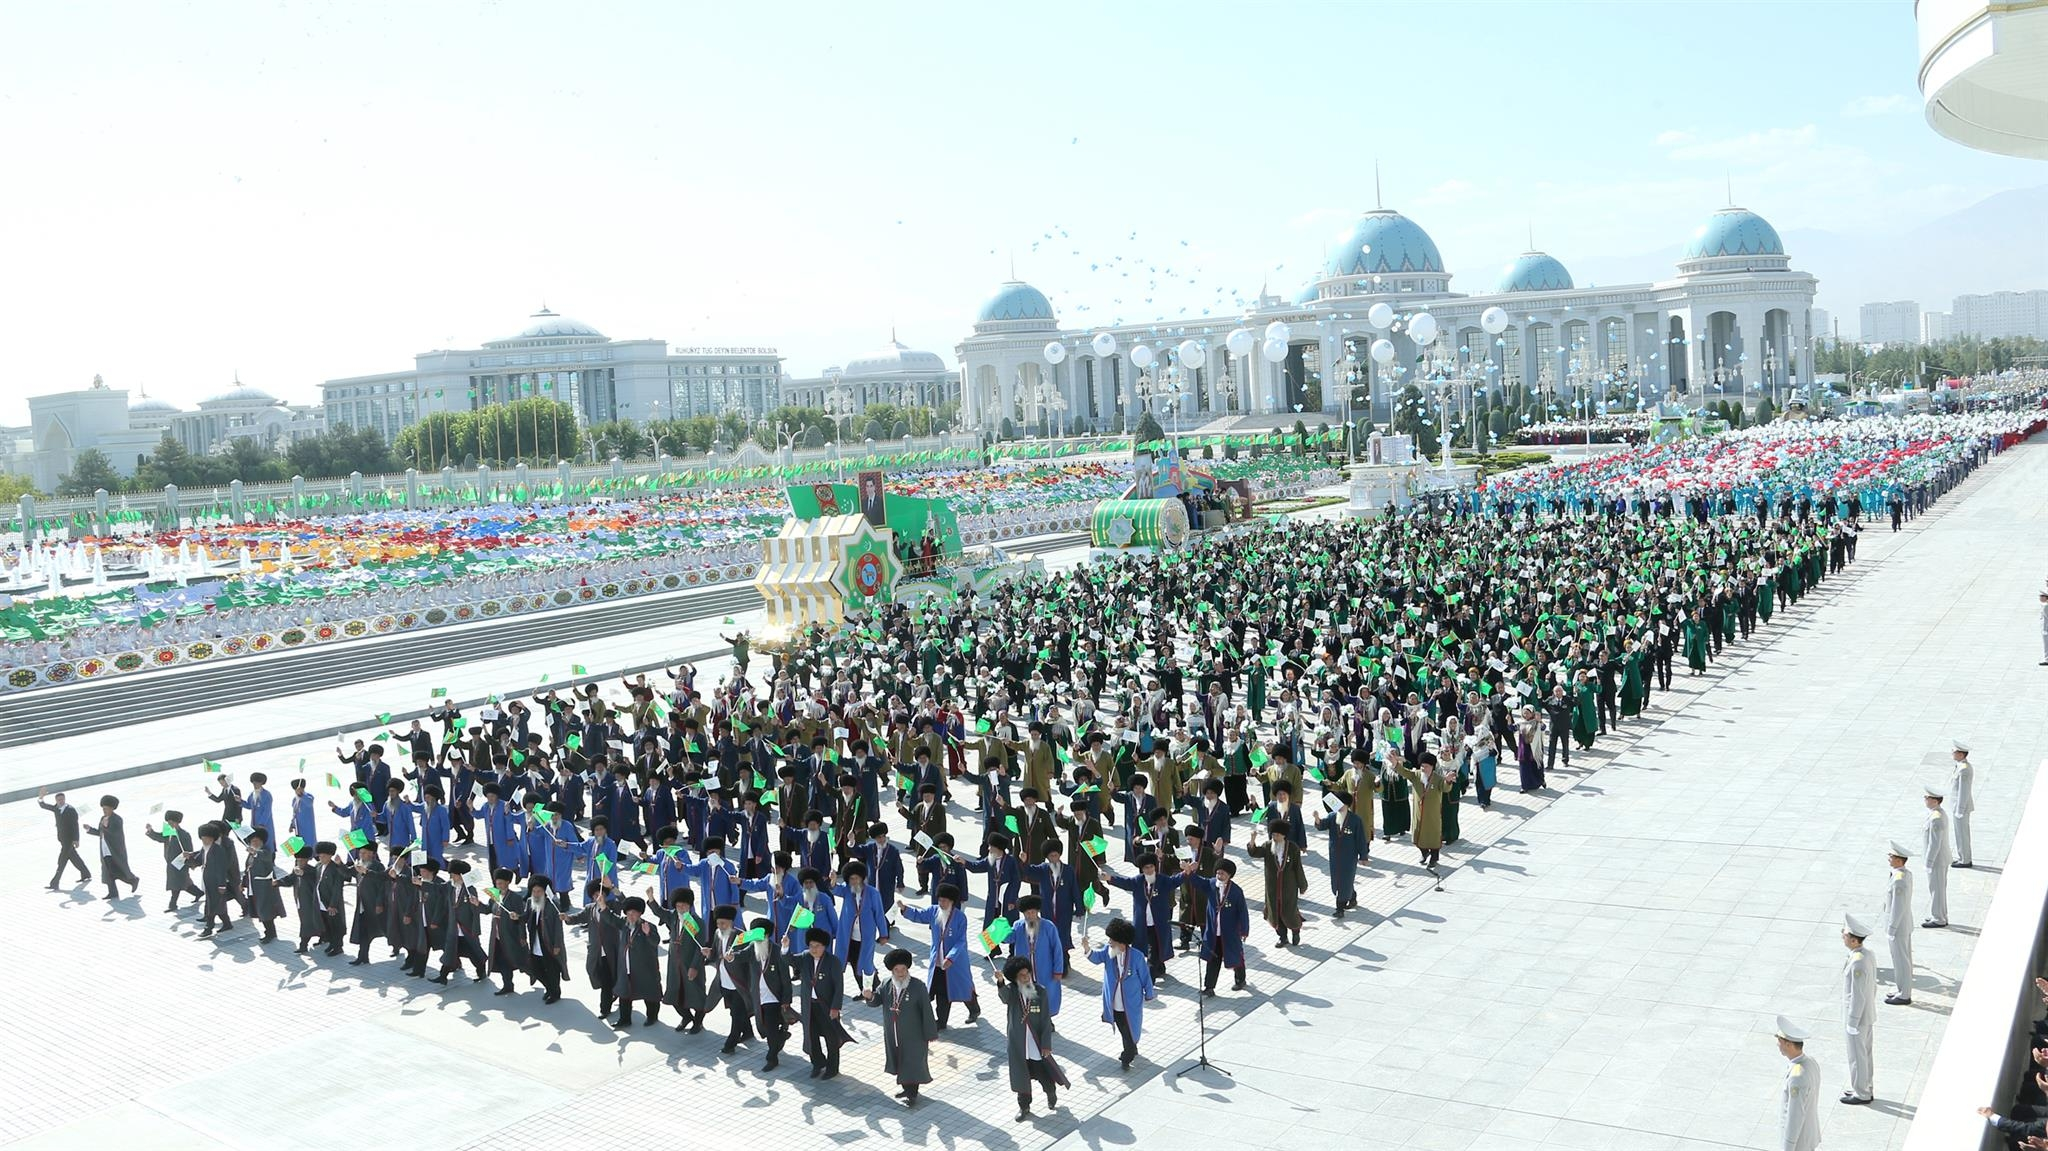 27th anniversary of Turkmenistan's independence